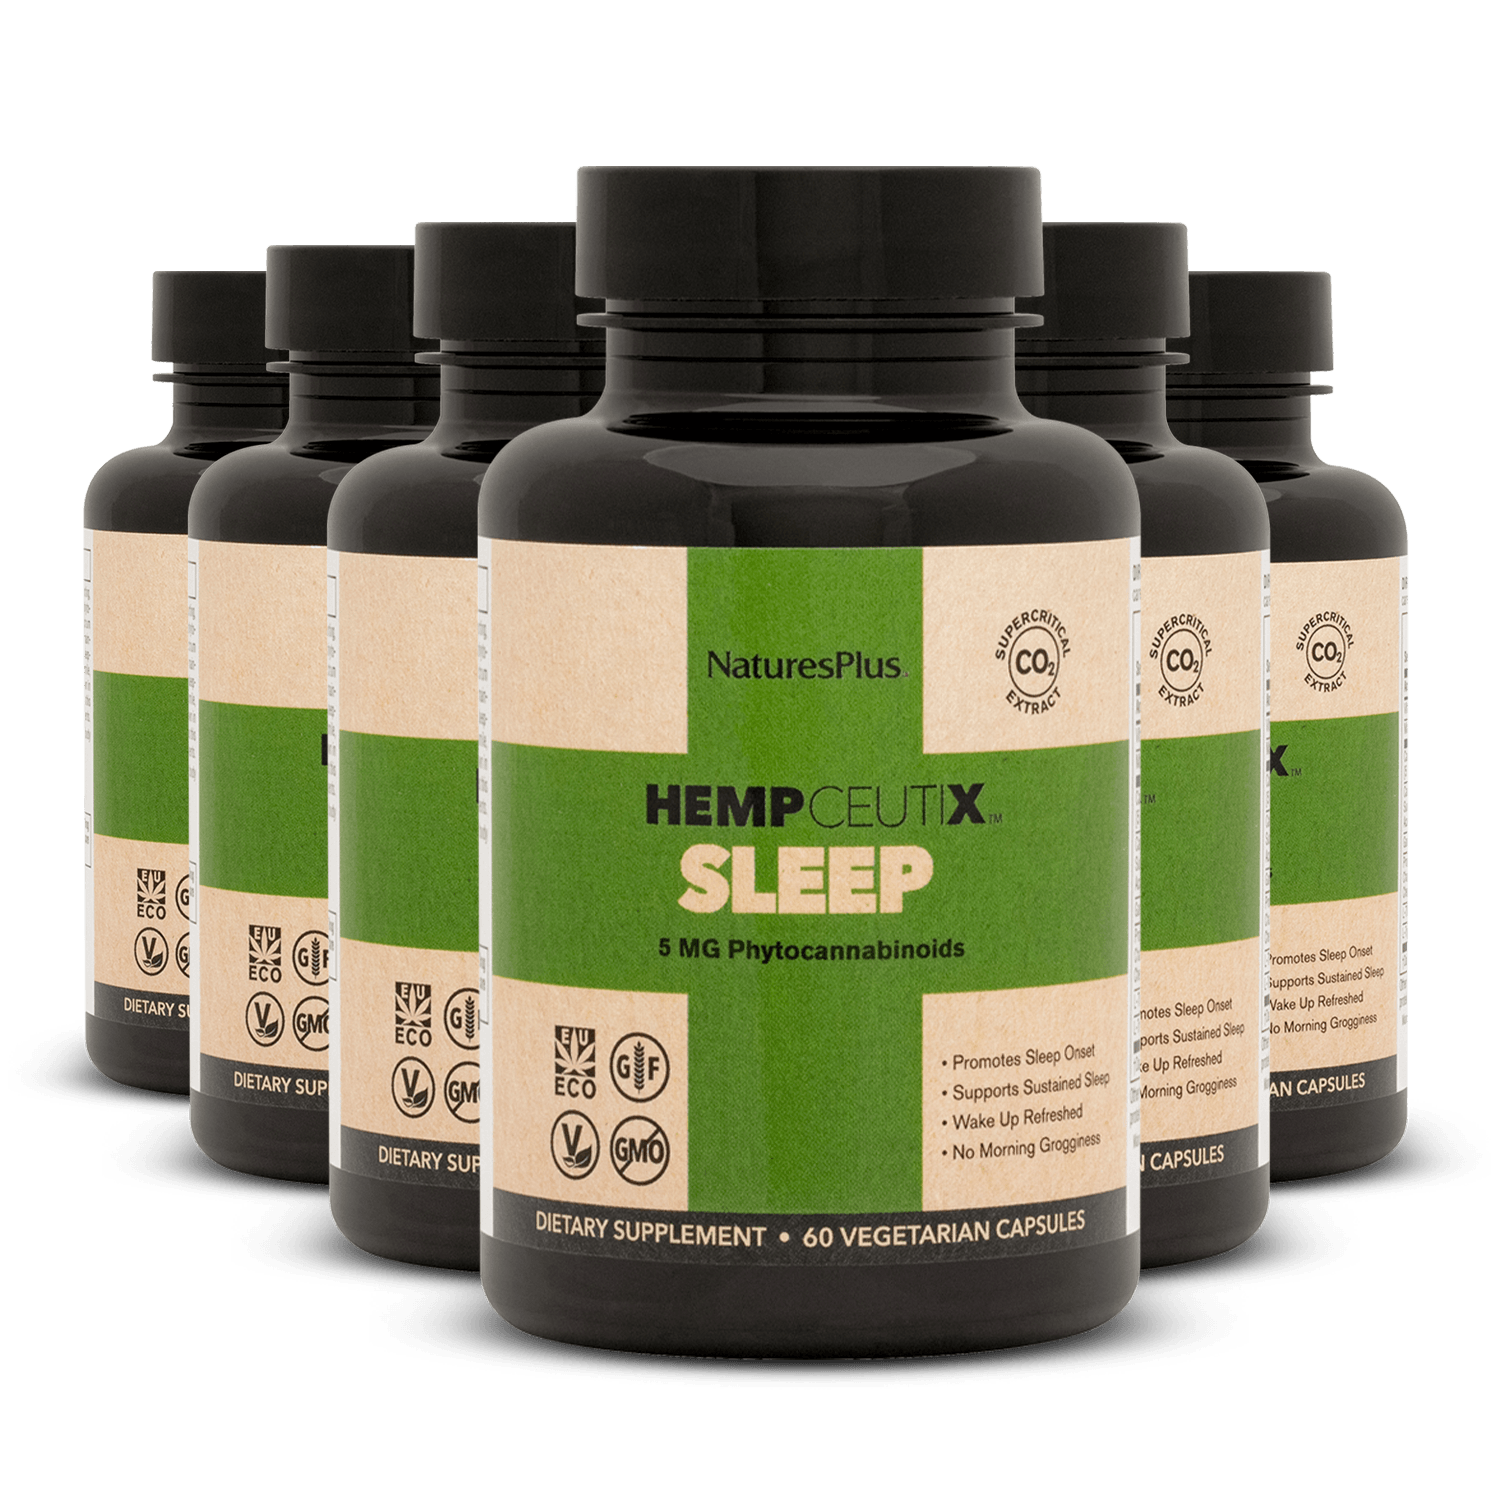 HempCeutix Sleep 5mg CBD Capsules (6 Pack)